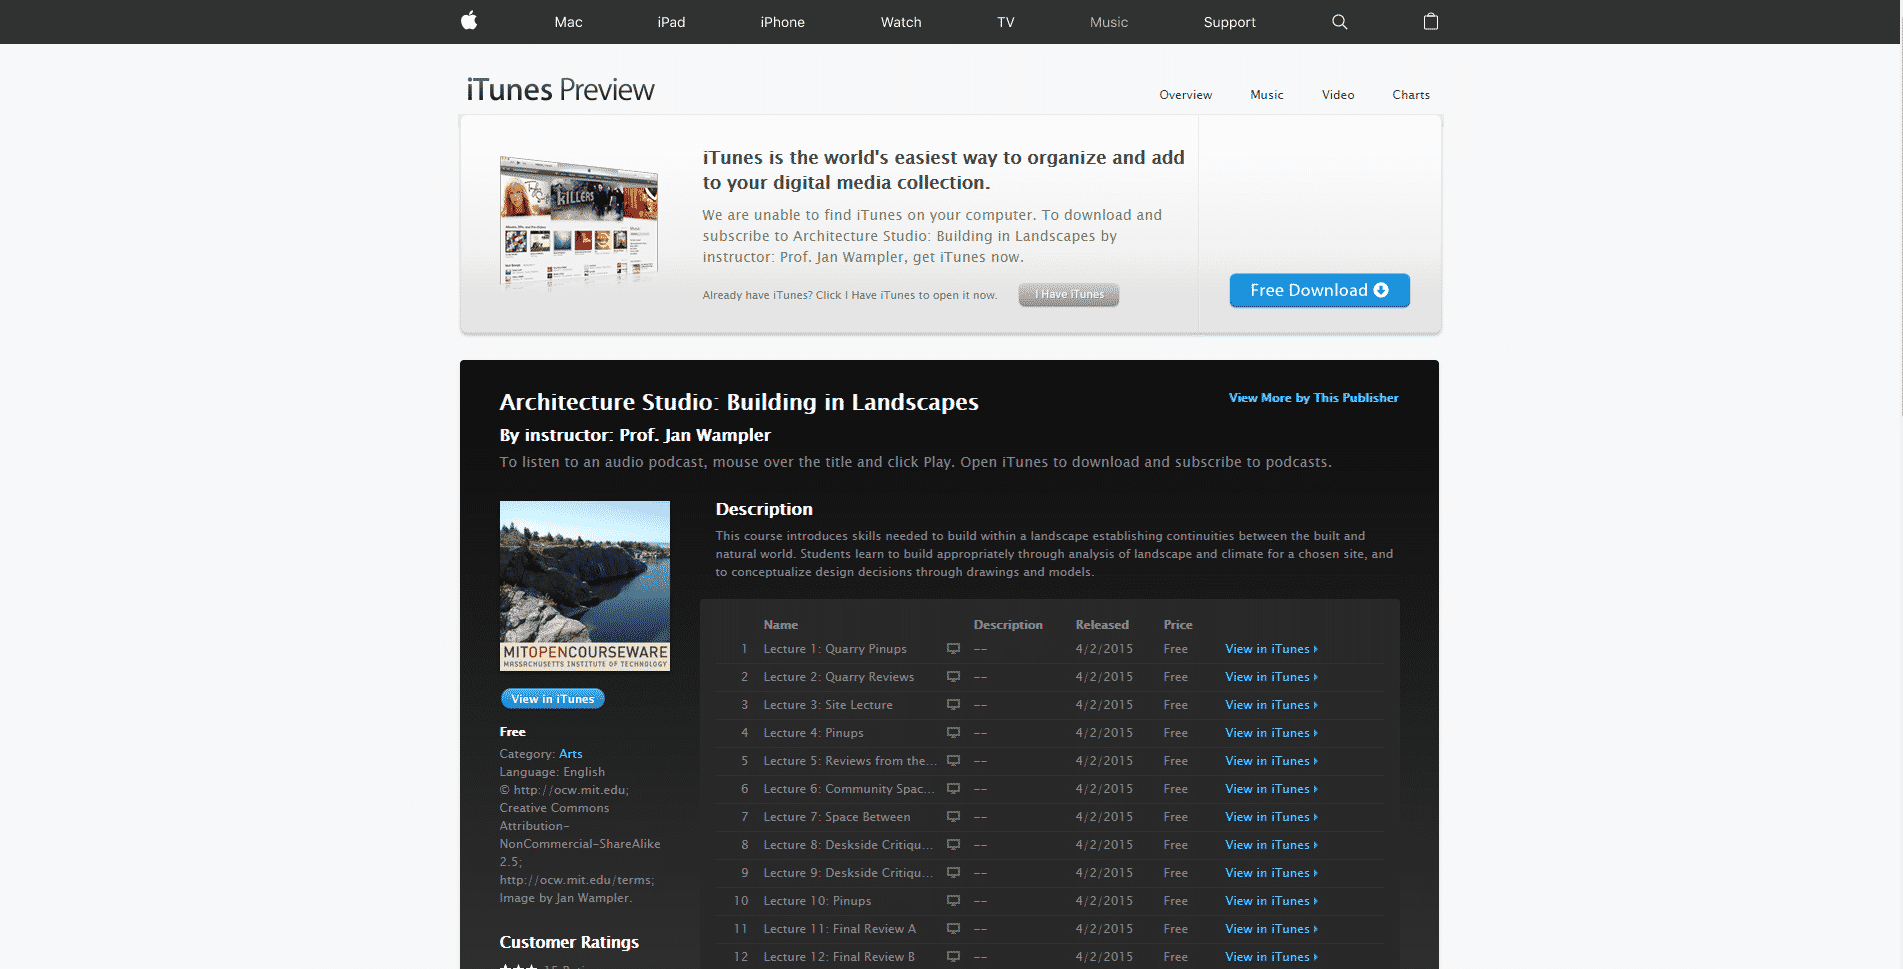 iTunes Learn Design and Architecture Lessons Online